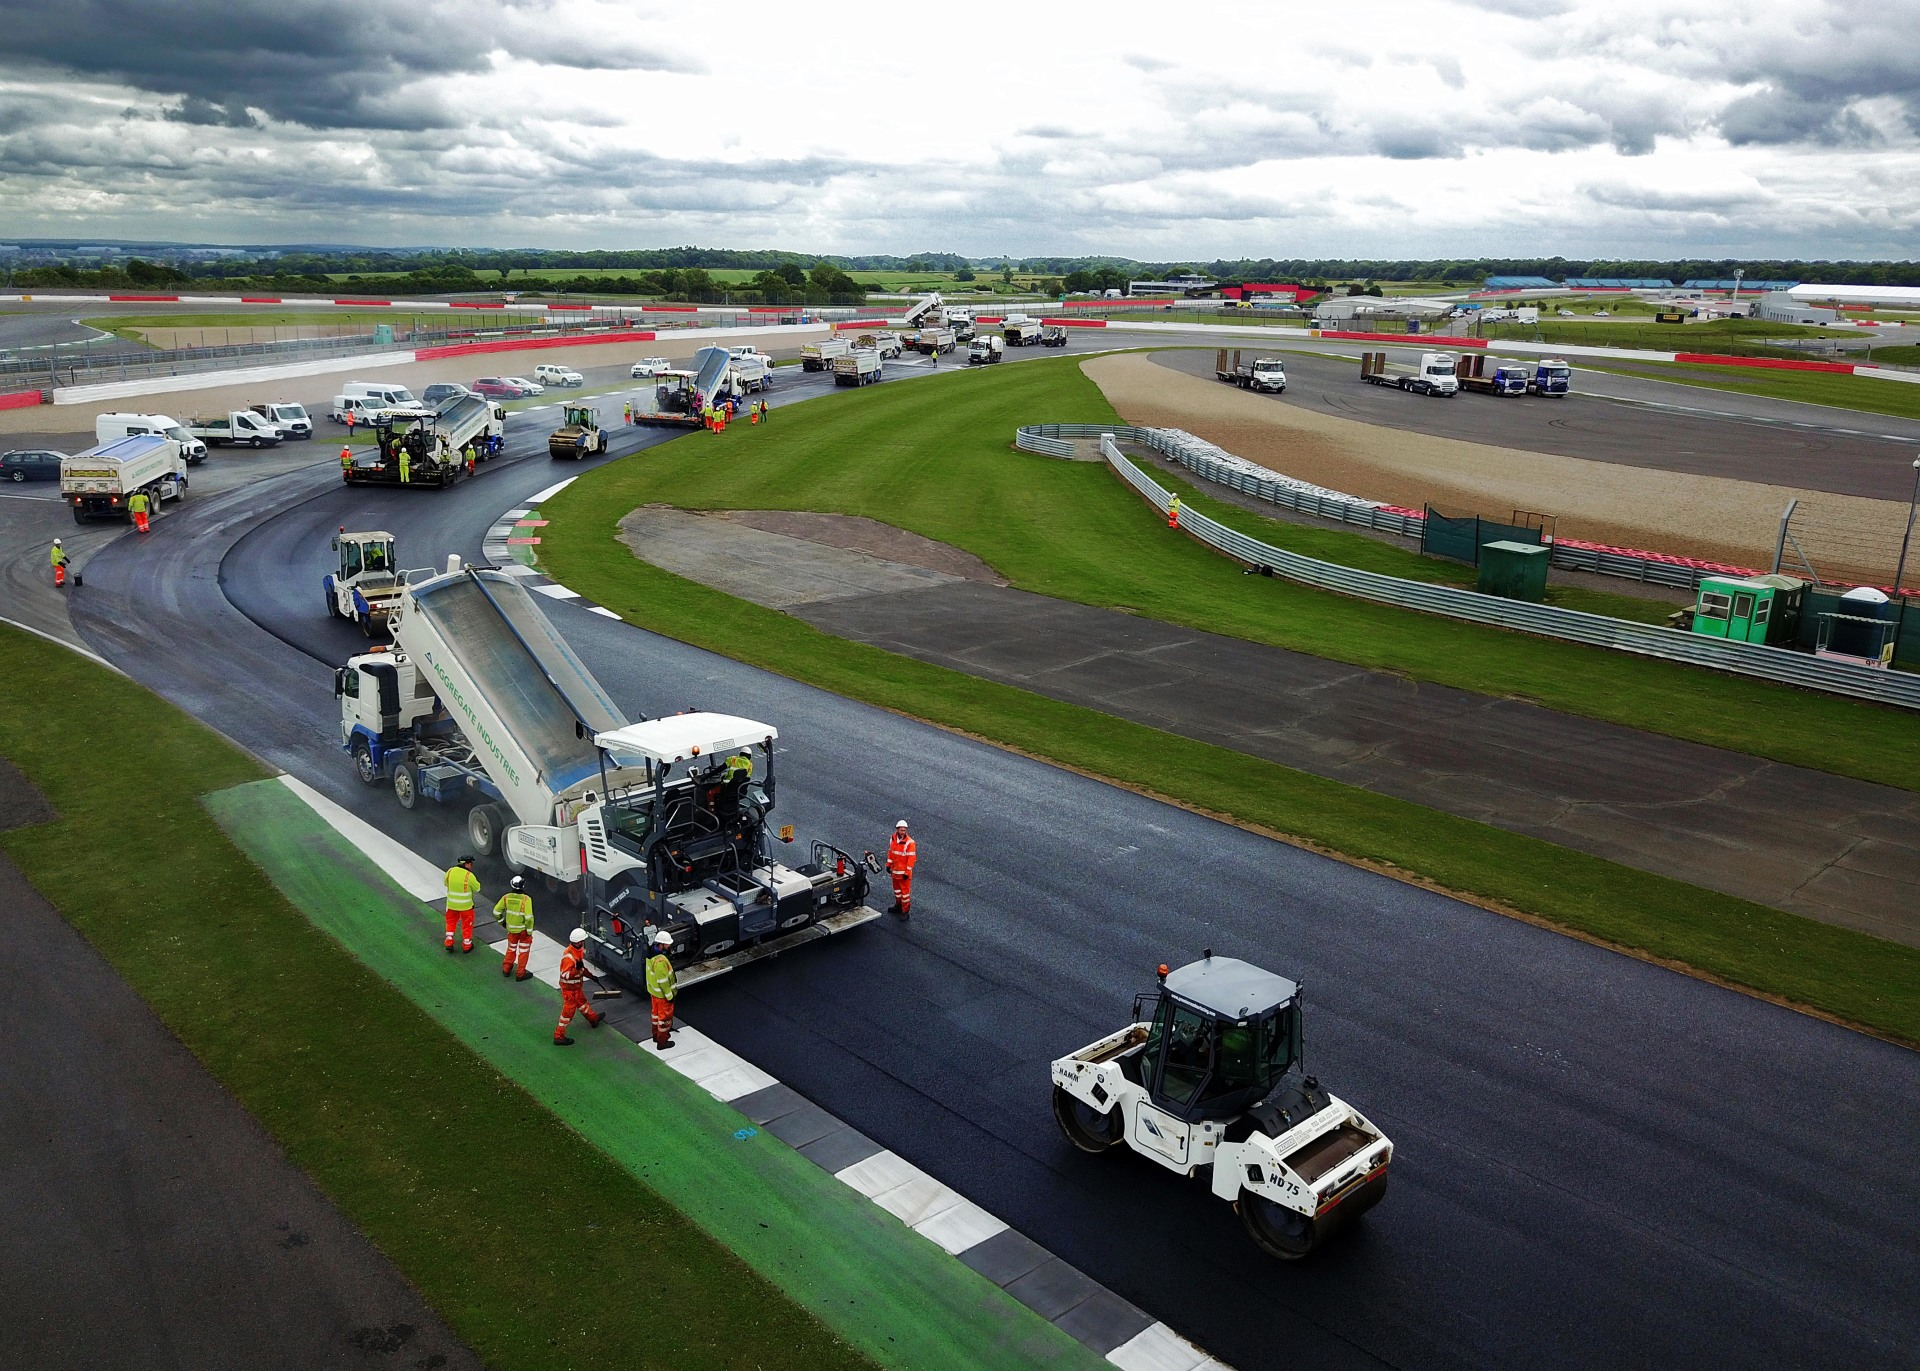 Aggregate Industries Silverstone